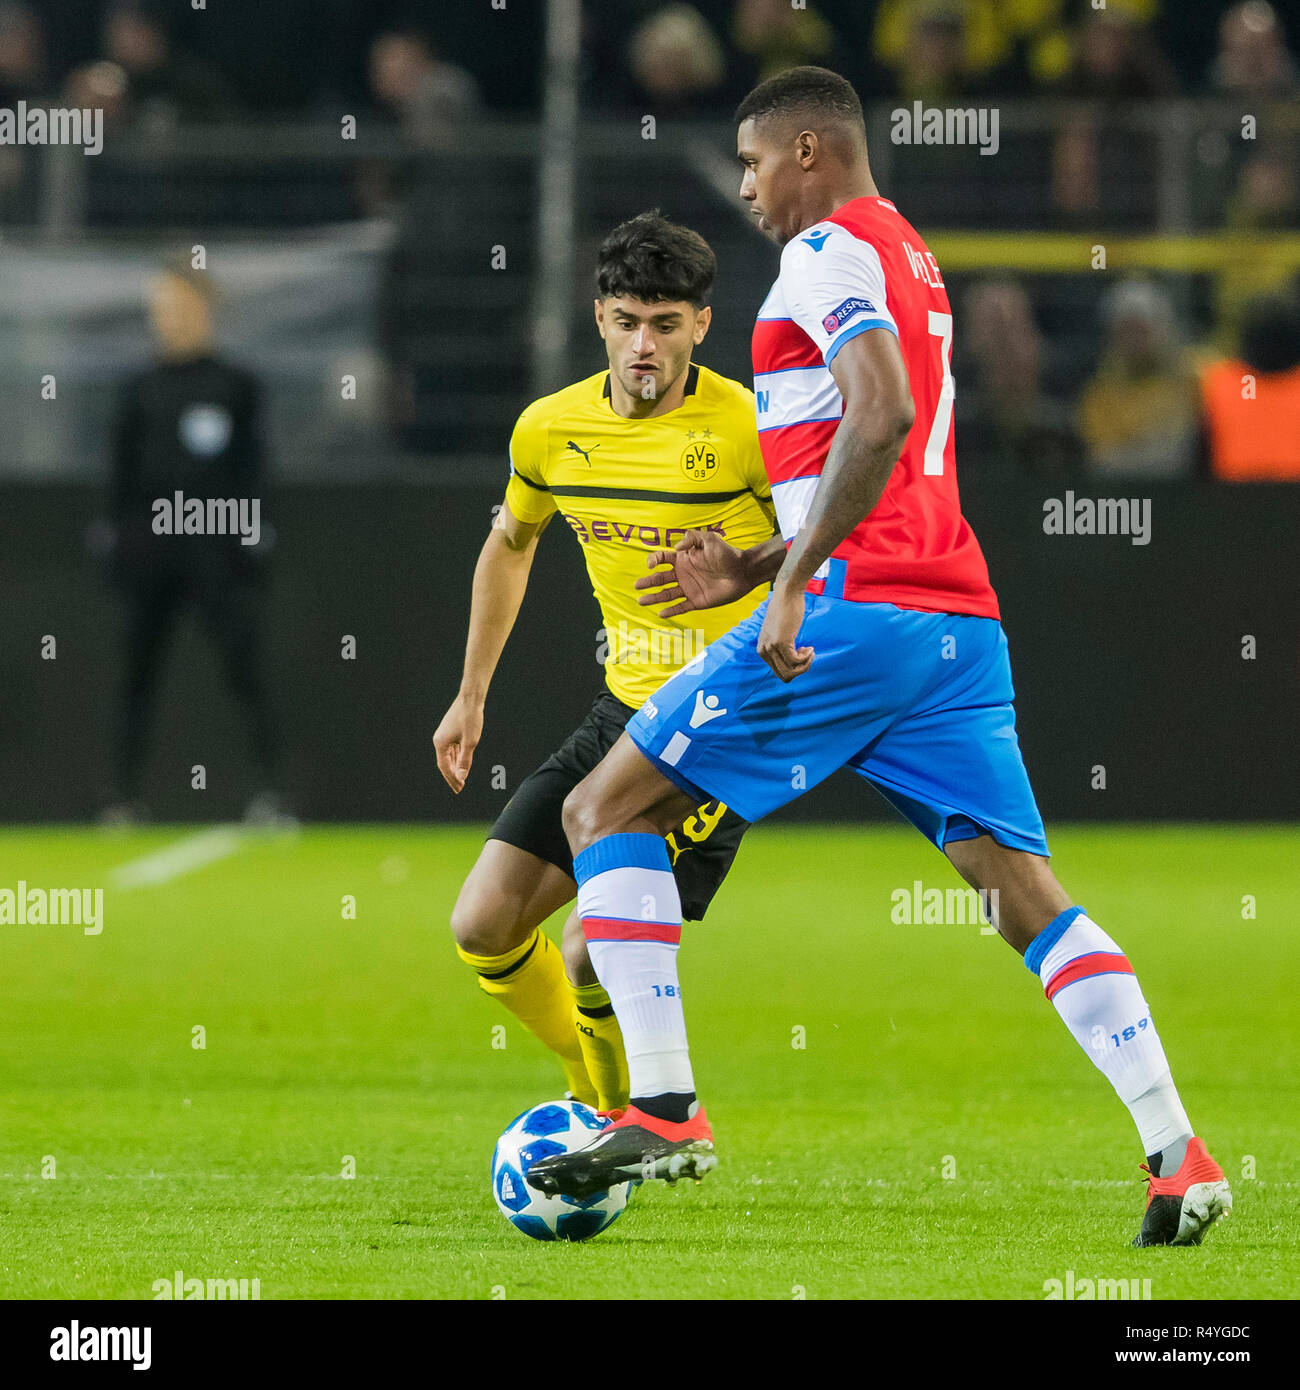 Champions League 4 Matchday Round Season 2018 2019: Mahmoud Dahoud Stock Photos & Mahmoud Dahoud Stock Images